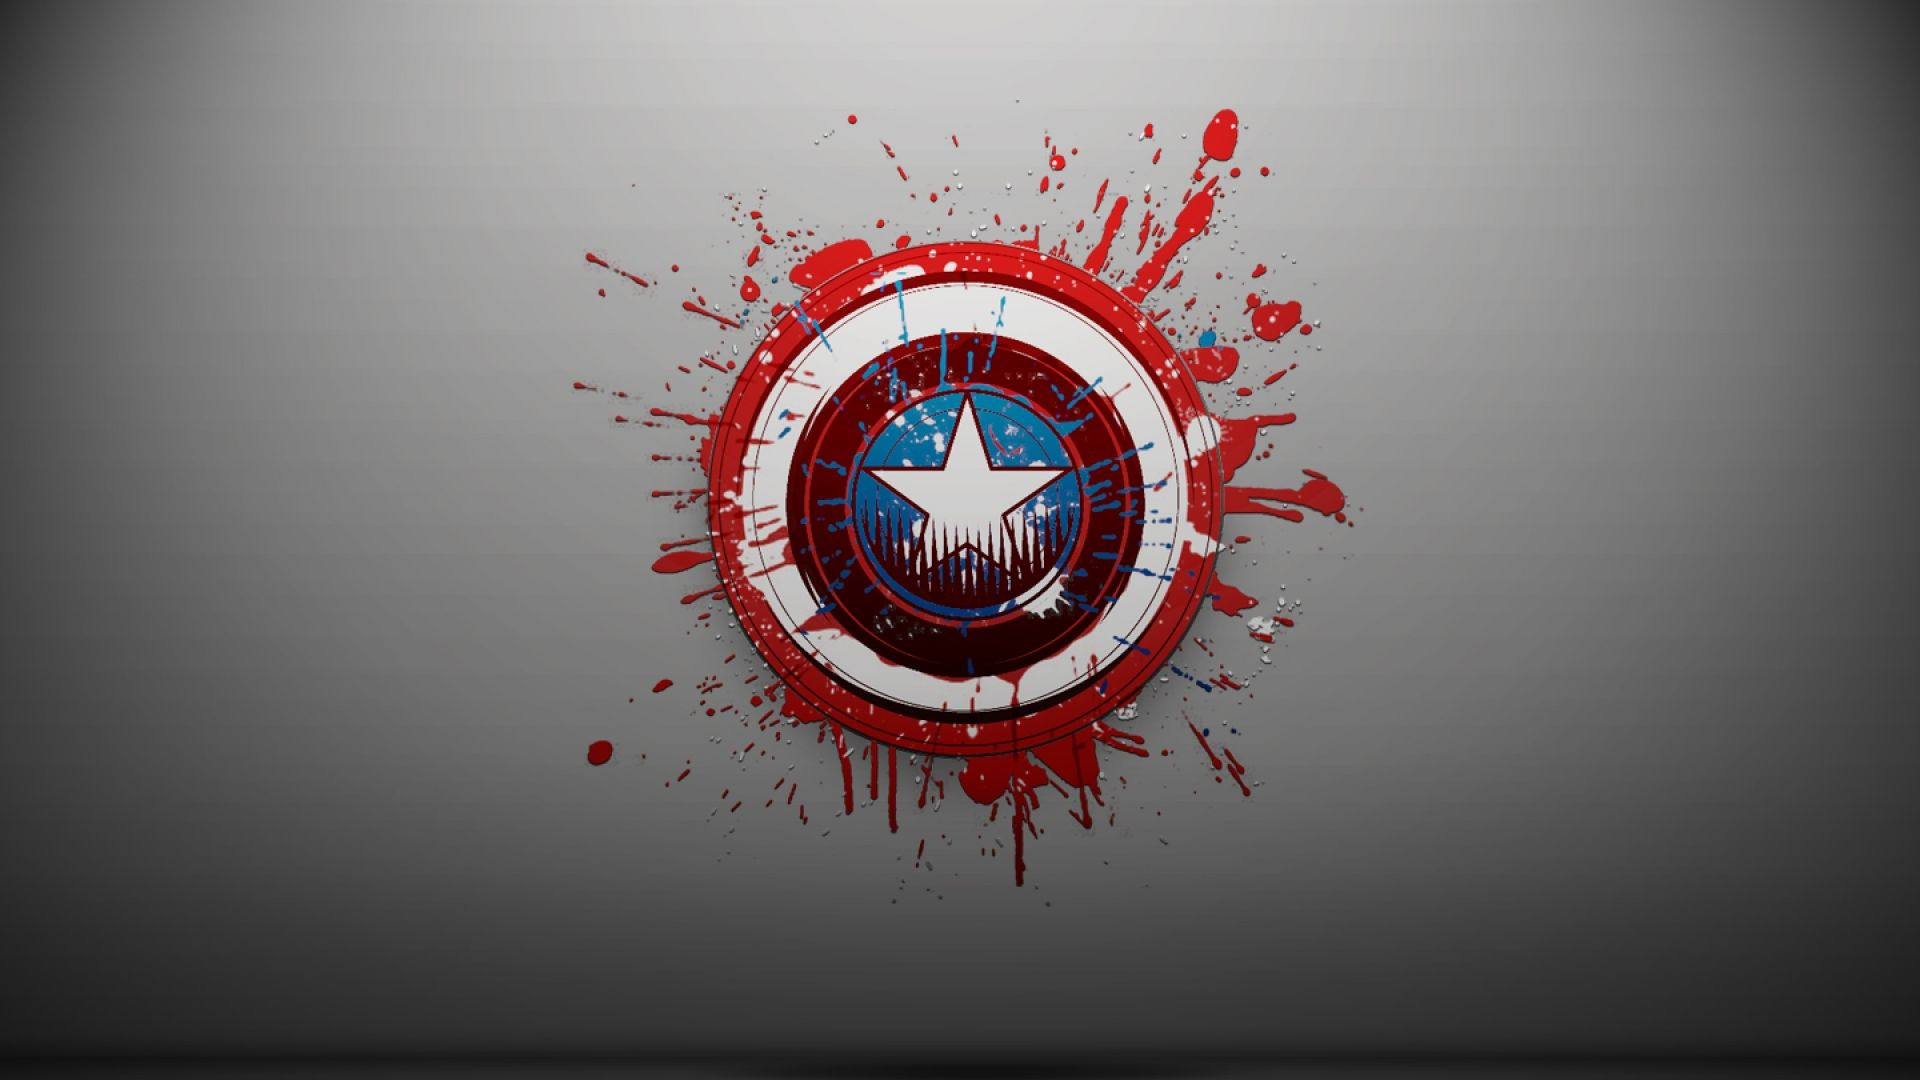 35 Captain America Wallpaper For Desktop Wallpapers Pinterest